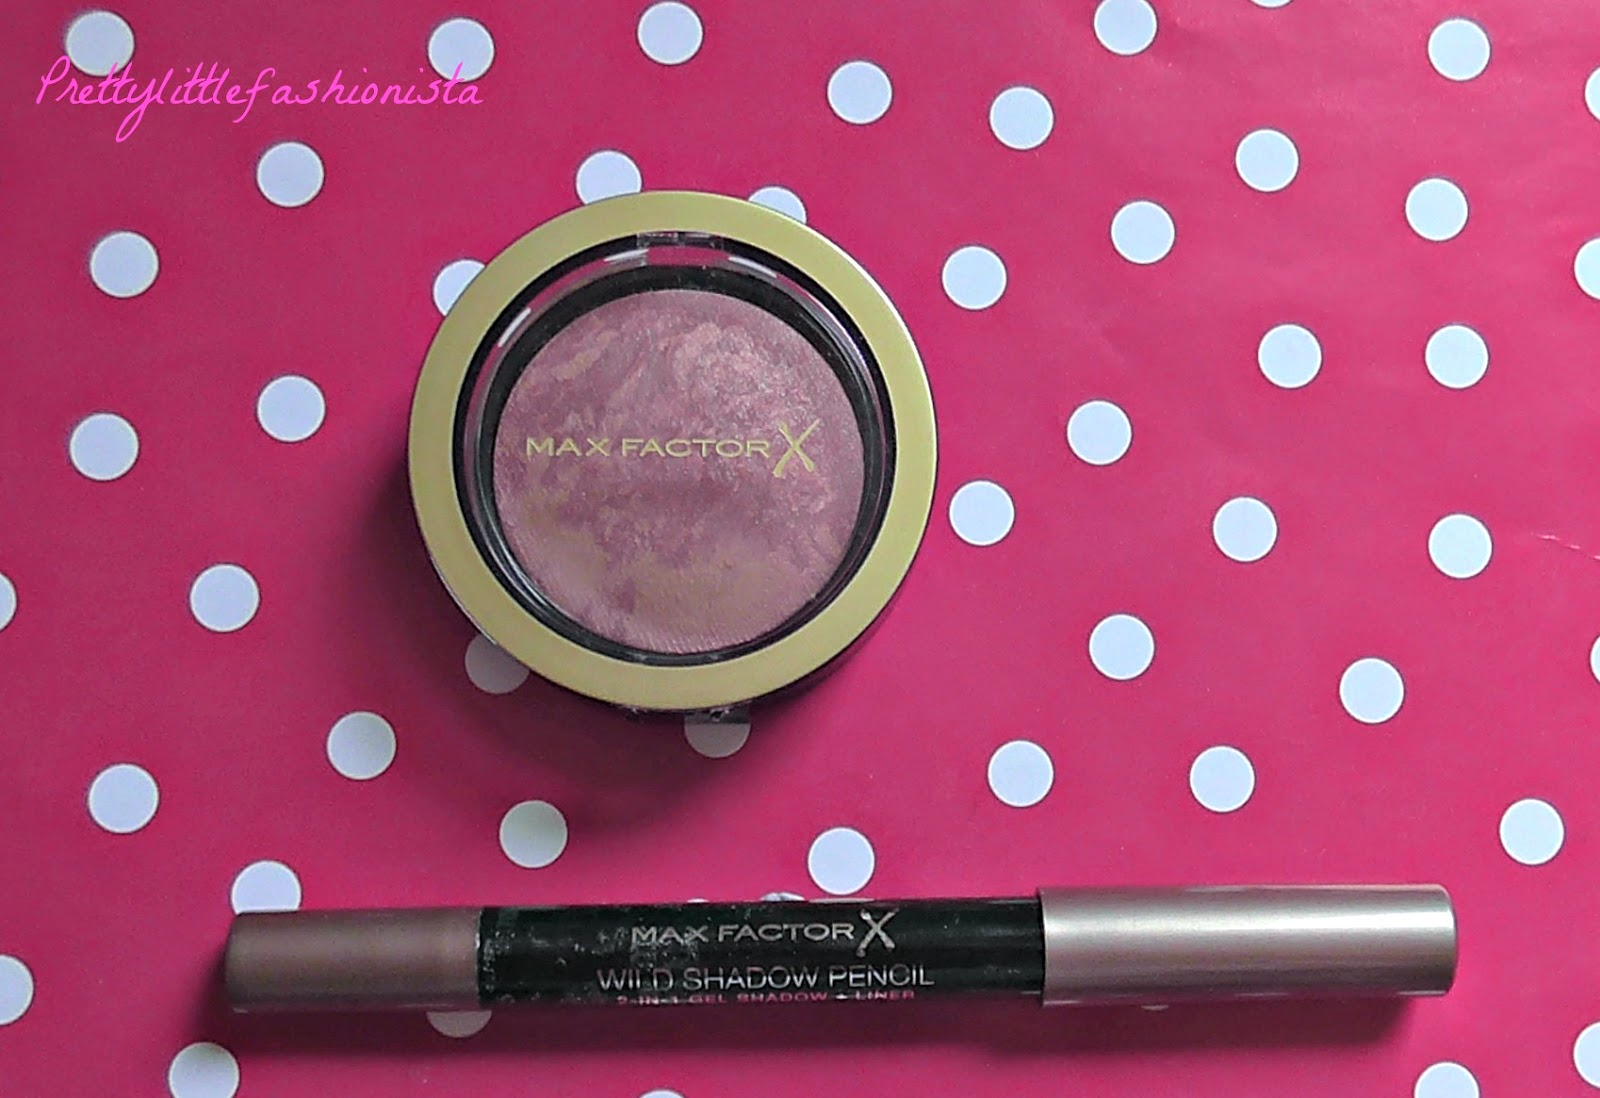 Max Factor Crème Puff Blush in Seductive Pink and Wild Eyeshadow Pencil in Caramel Rage